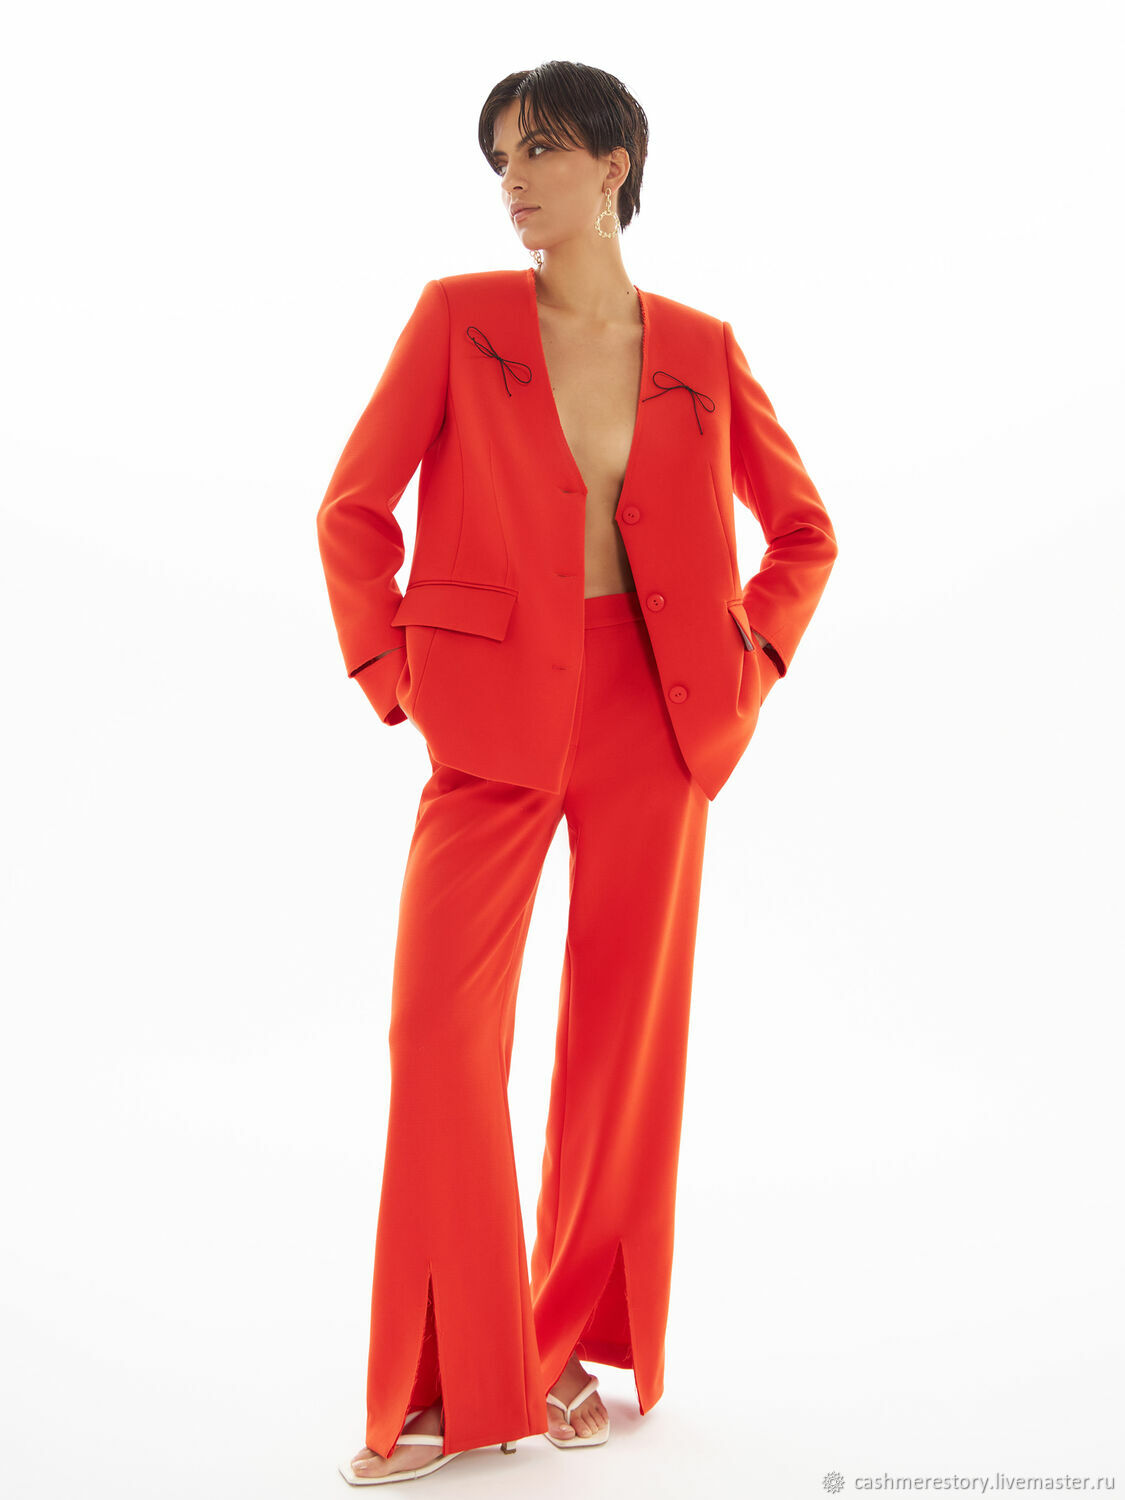 Suit: elongated jacket and trousers with slits, Suits, Moscow,  Фото №1